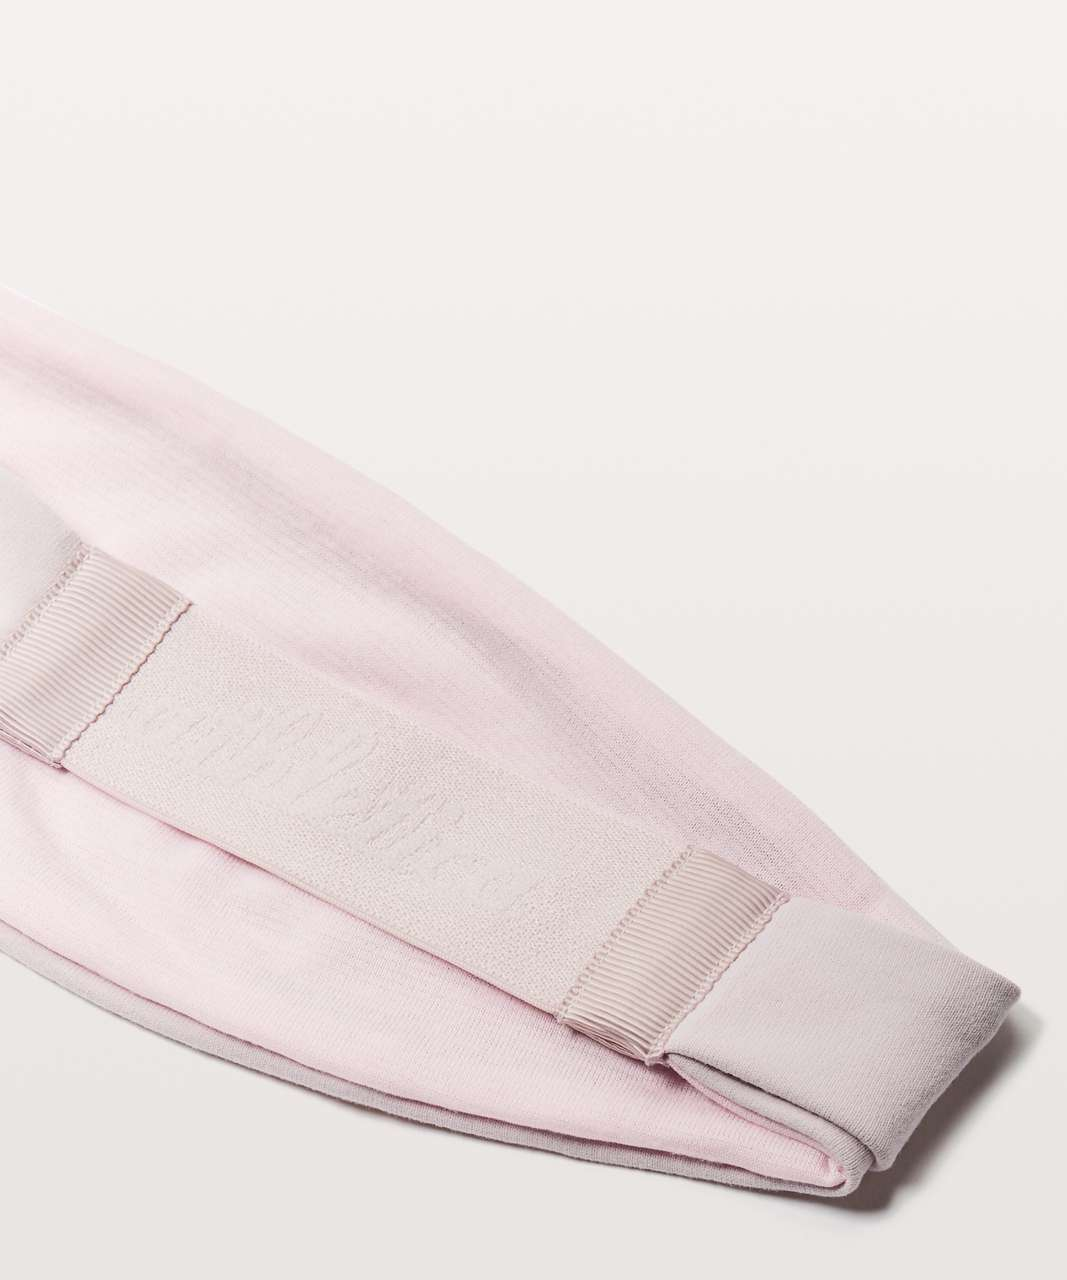 Lululemon Fringe Fighter Headband - Porcelain Pink / Heathered Pearl Pink